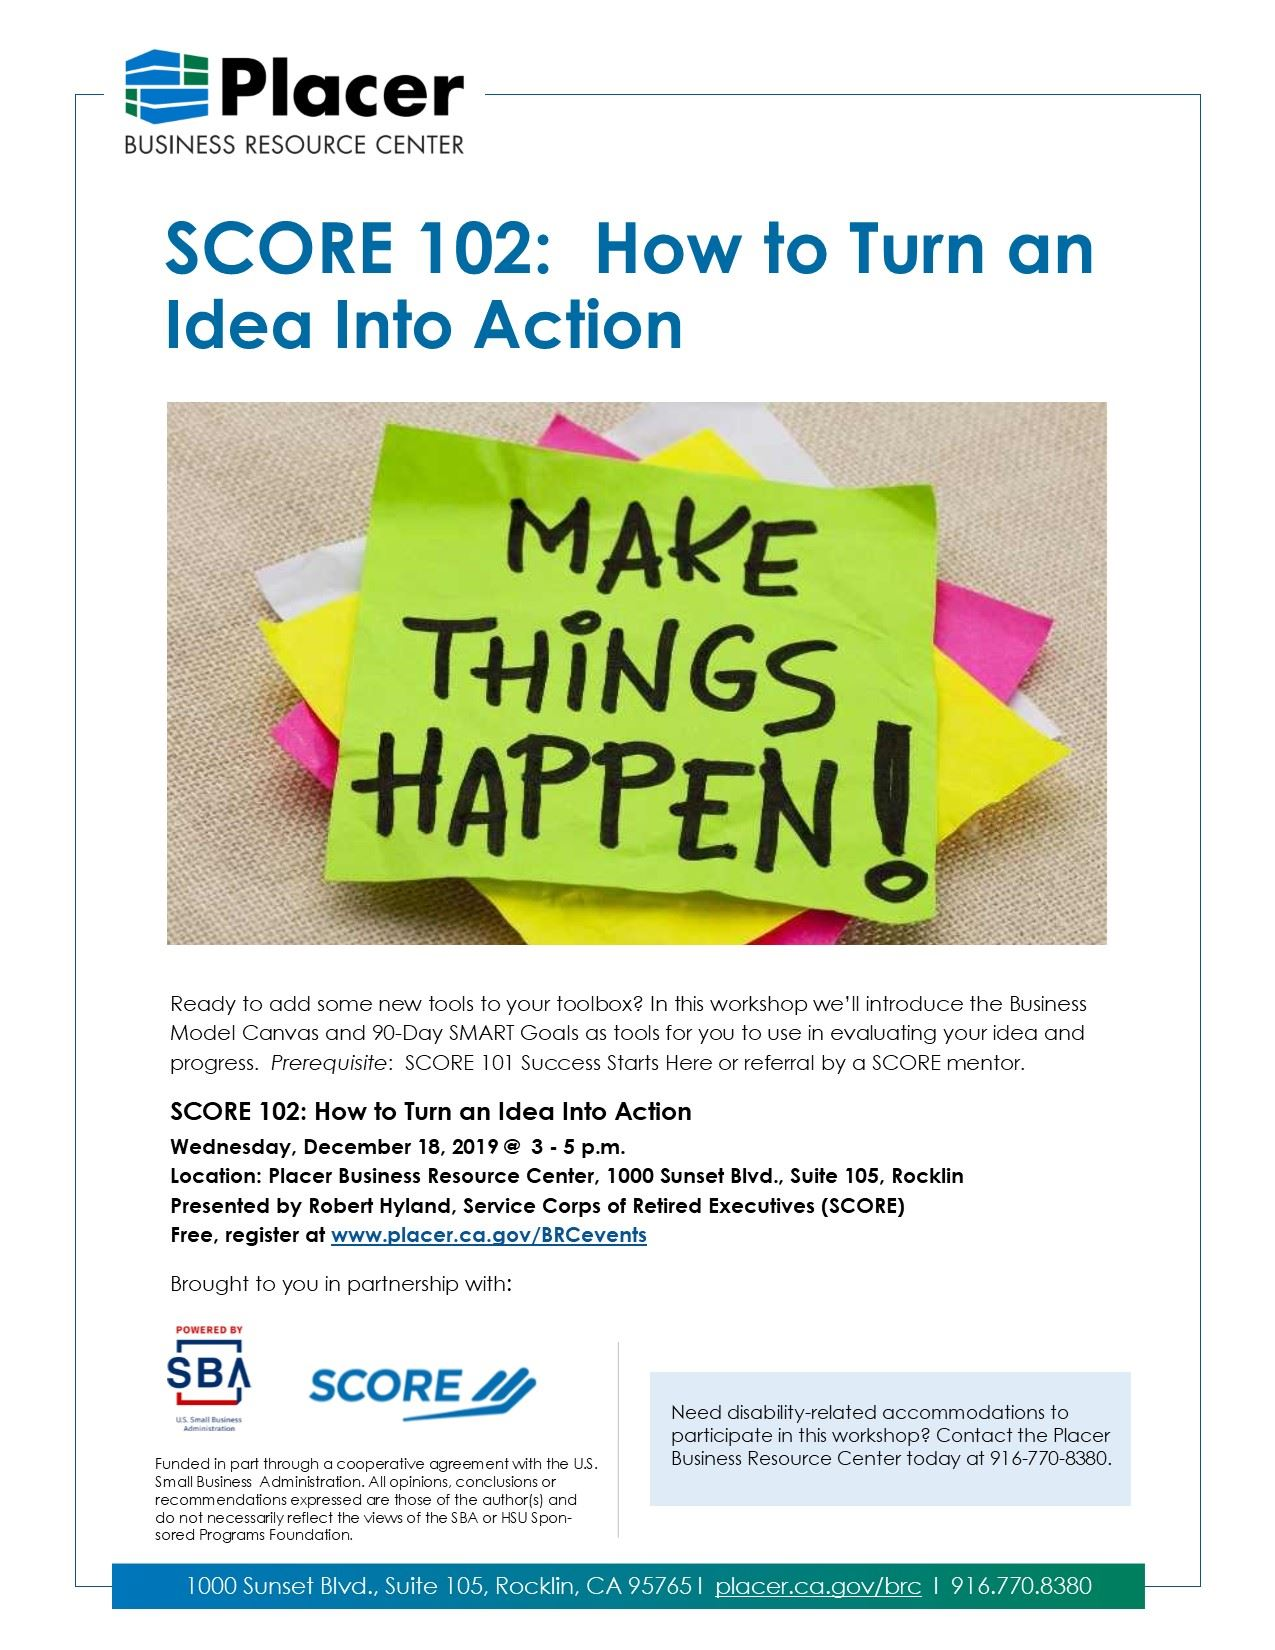 SCORE 102 Turn Idea to Action (12-18)